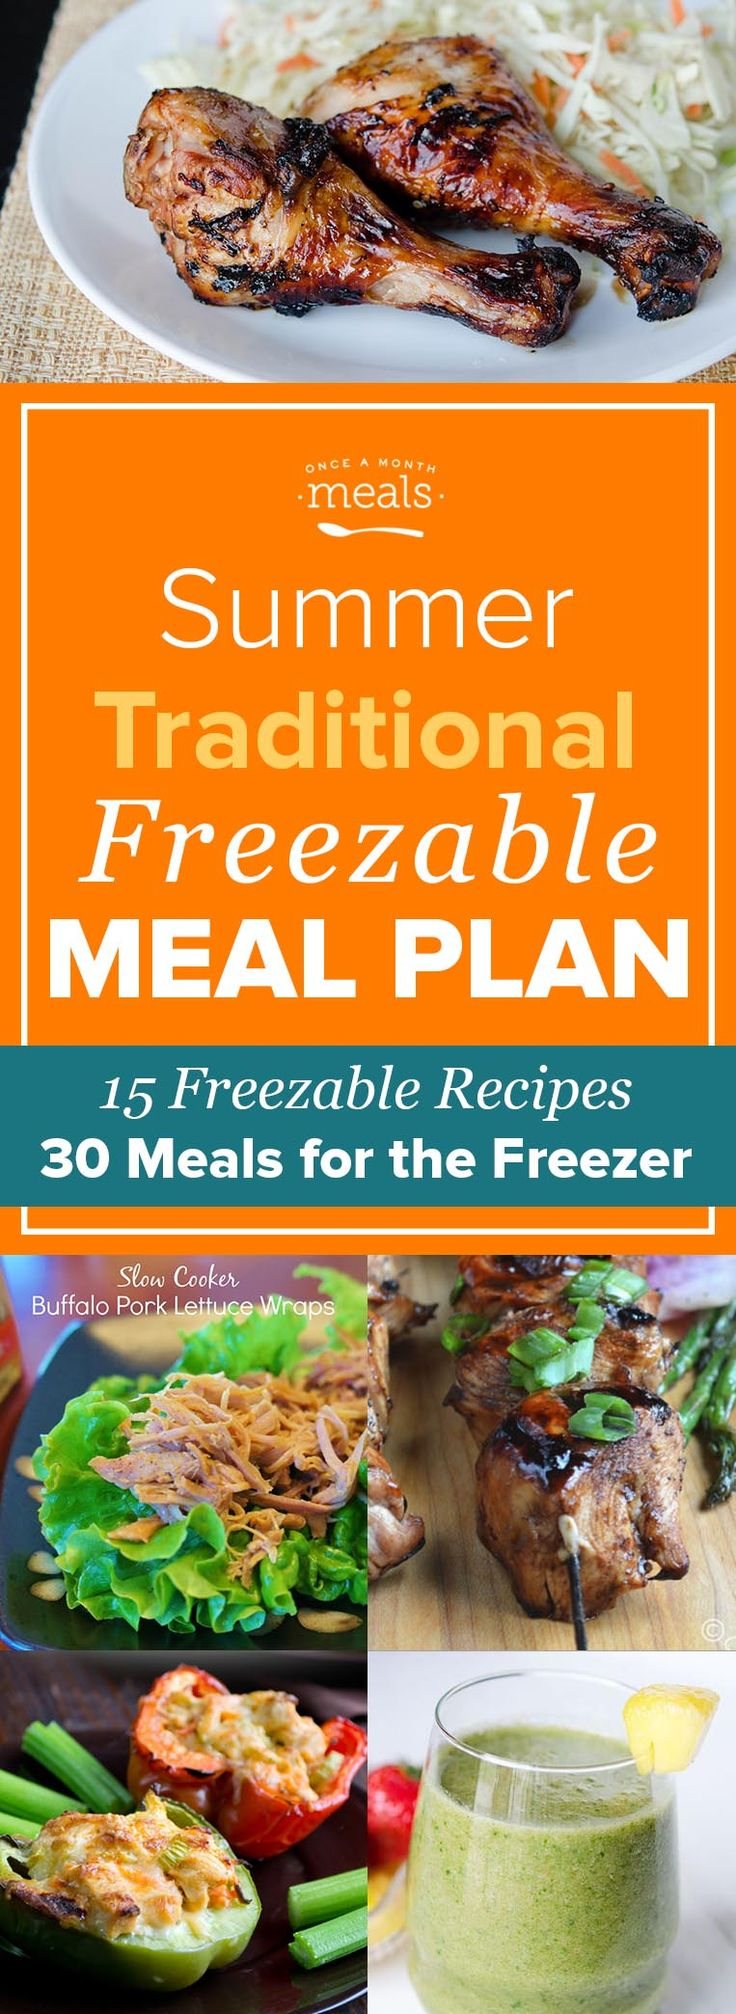 With plenty of throw and go dinners for your grill and breakfasts and lunches for long days at the pool, you'll want to get our Summer Traditional Freezer Menu in your freezer ASAP.